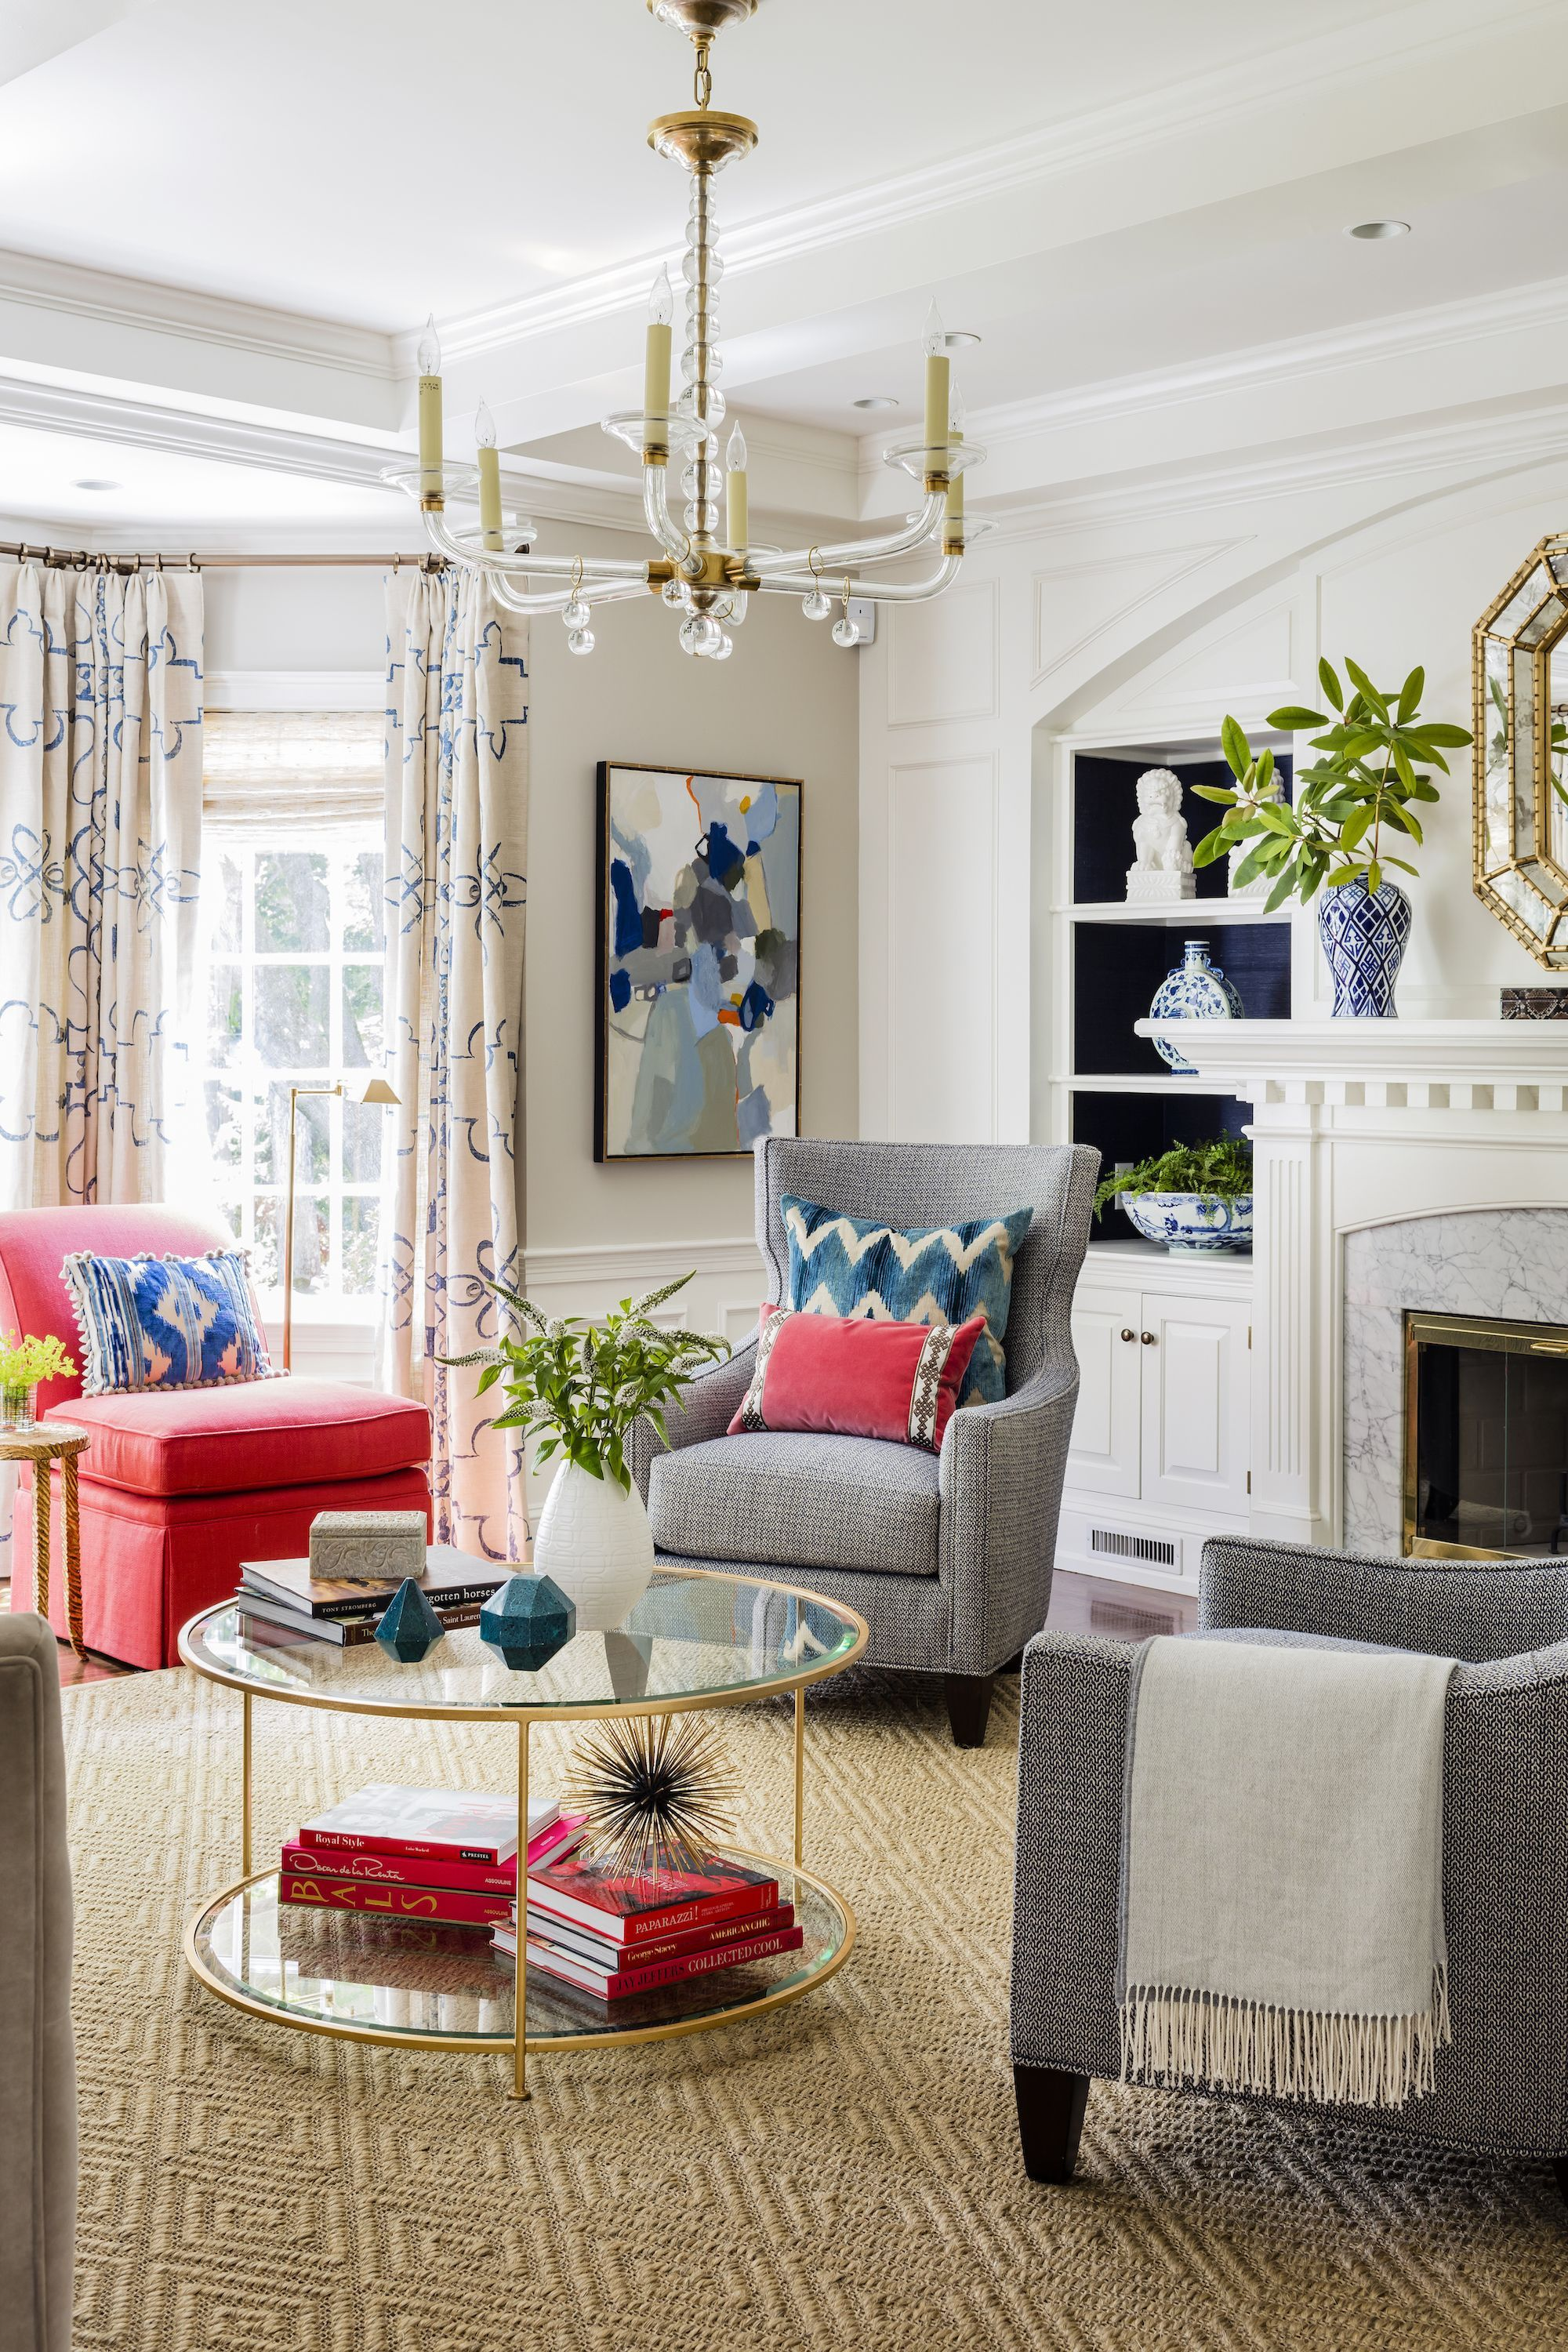 99 Ideas for Decorating Your Living Room 2021 in 2020 ...